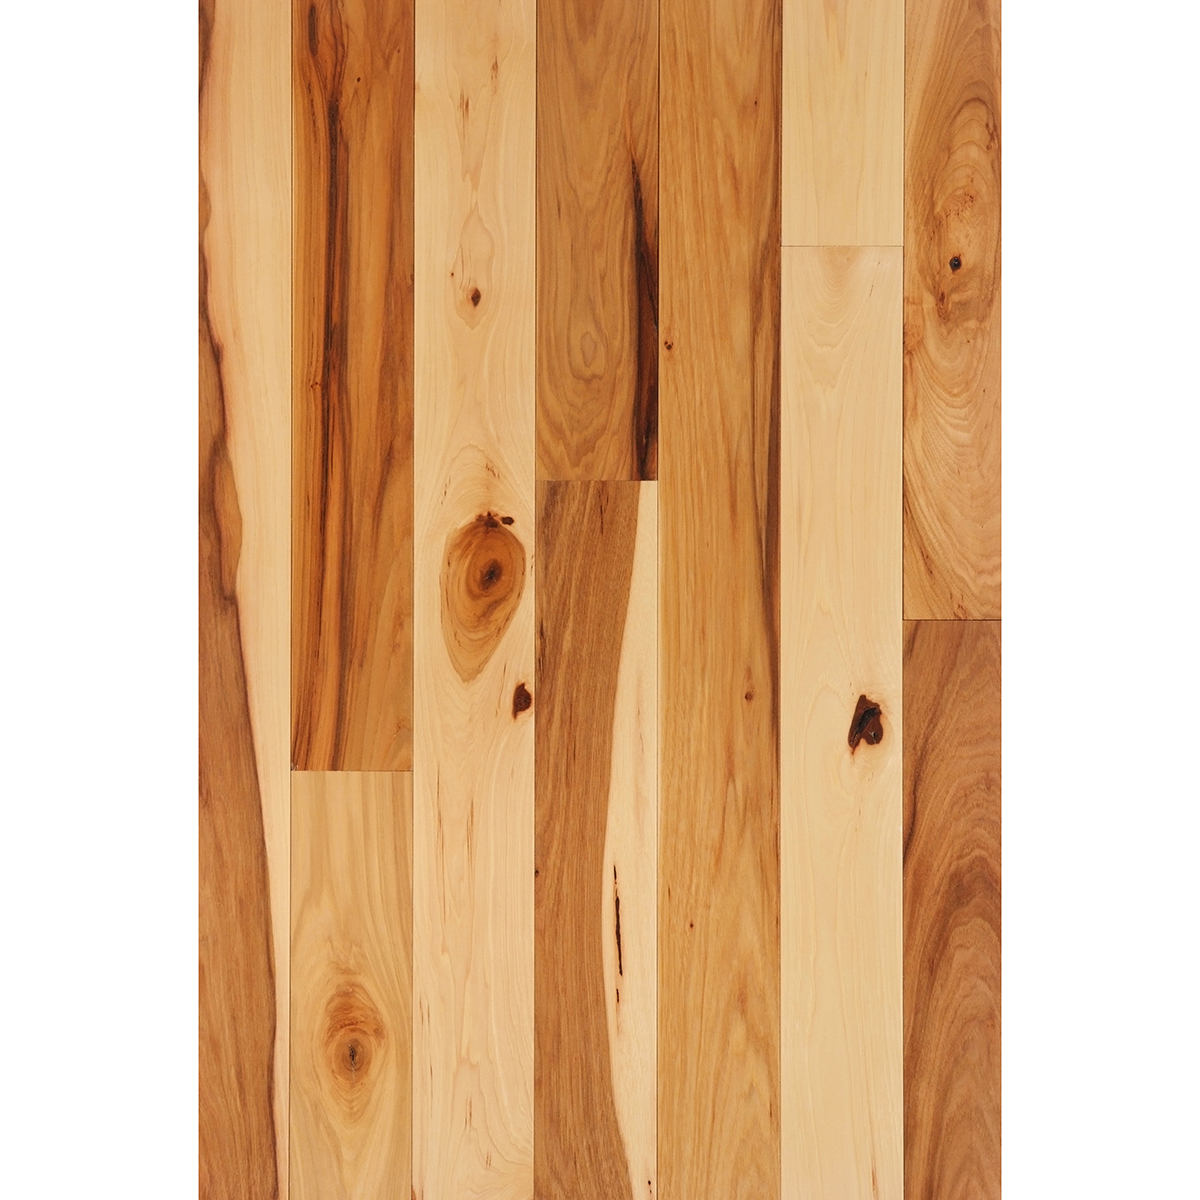 Prefinished 3 Hickory Character Grade Rustic Flooring From Baird Brothers 1 800 732 1697